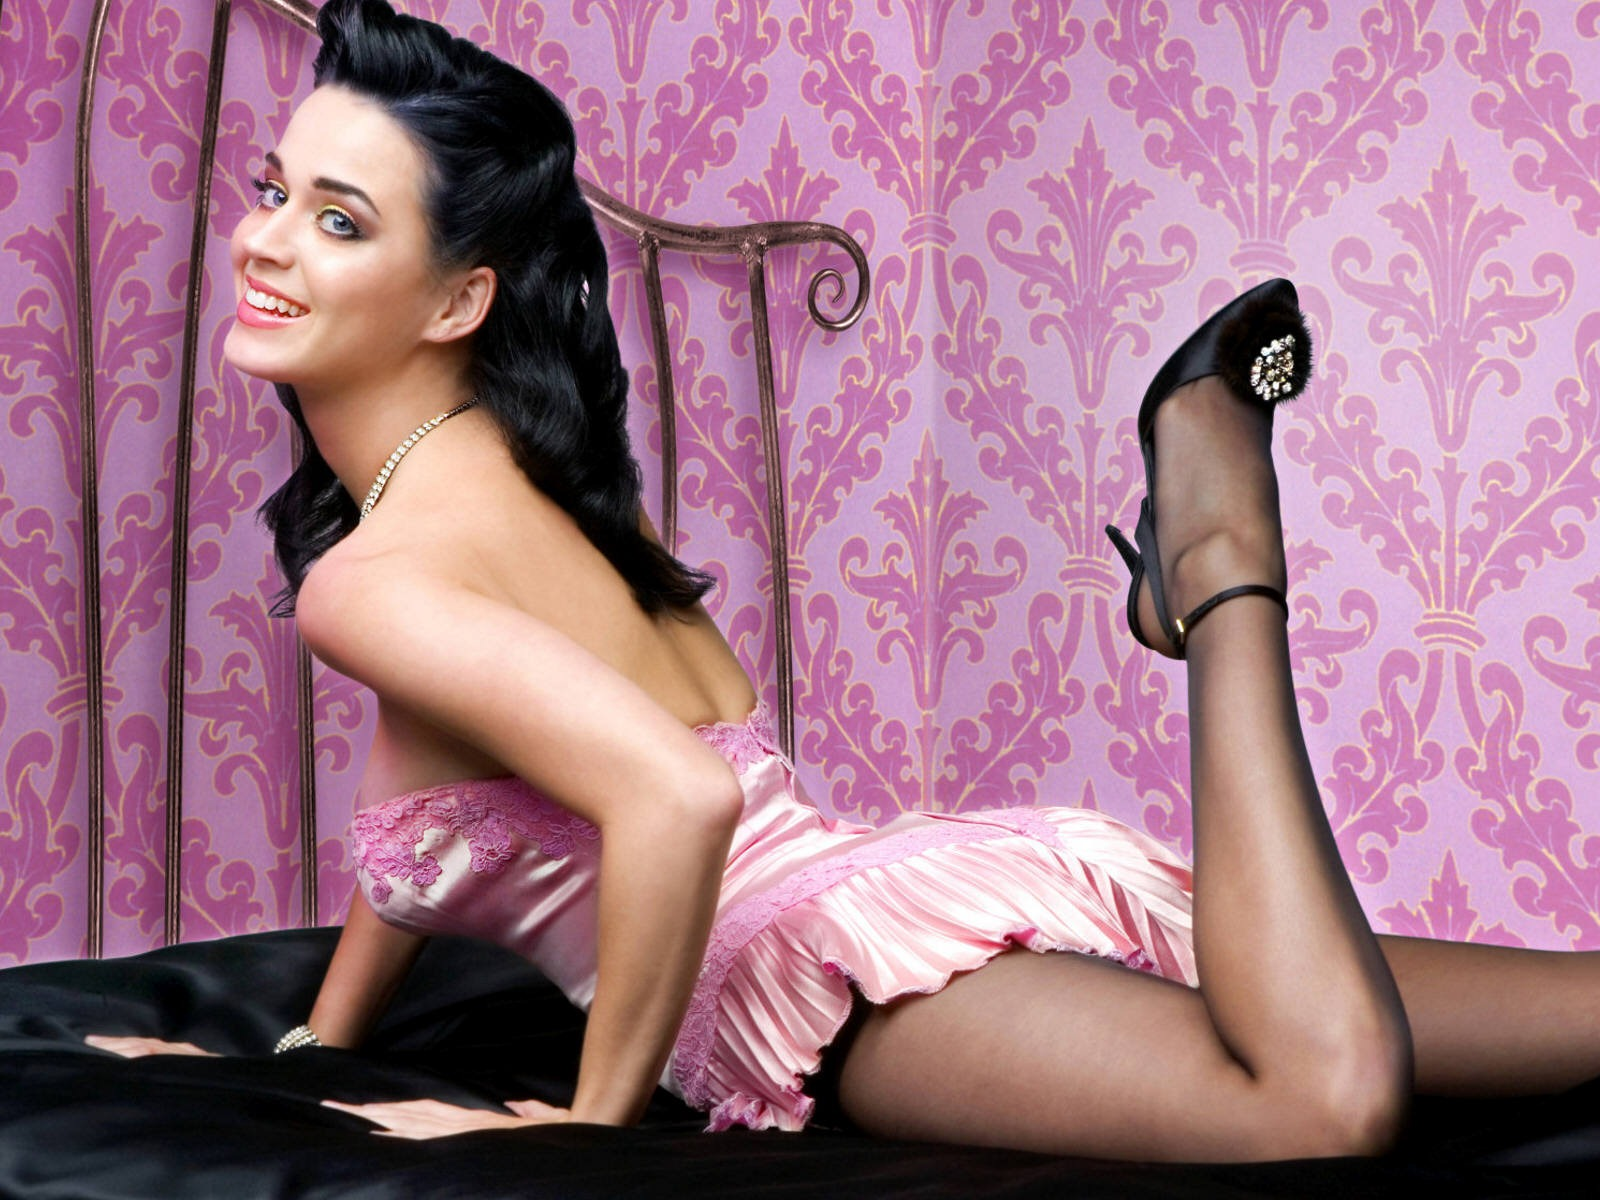 Hollywood Star: Katy Perry hd Wallpapers 2012